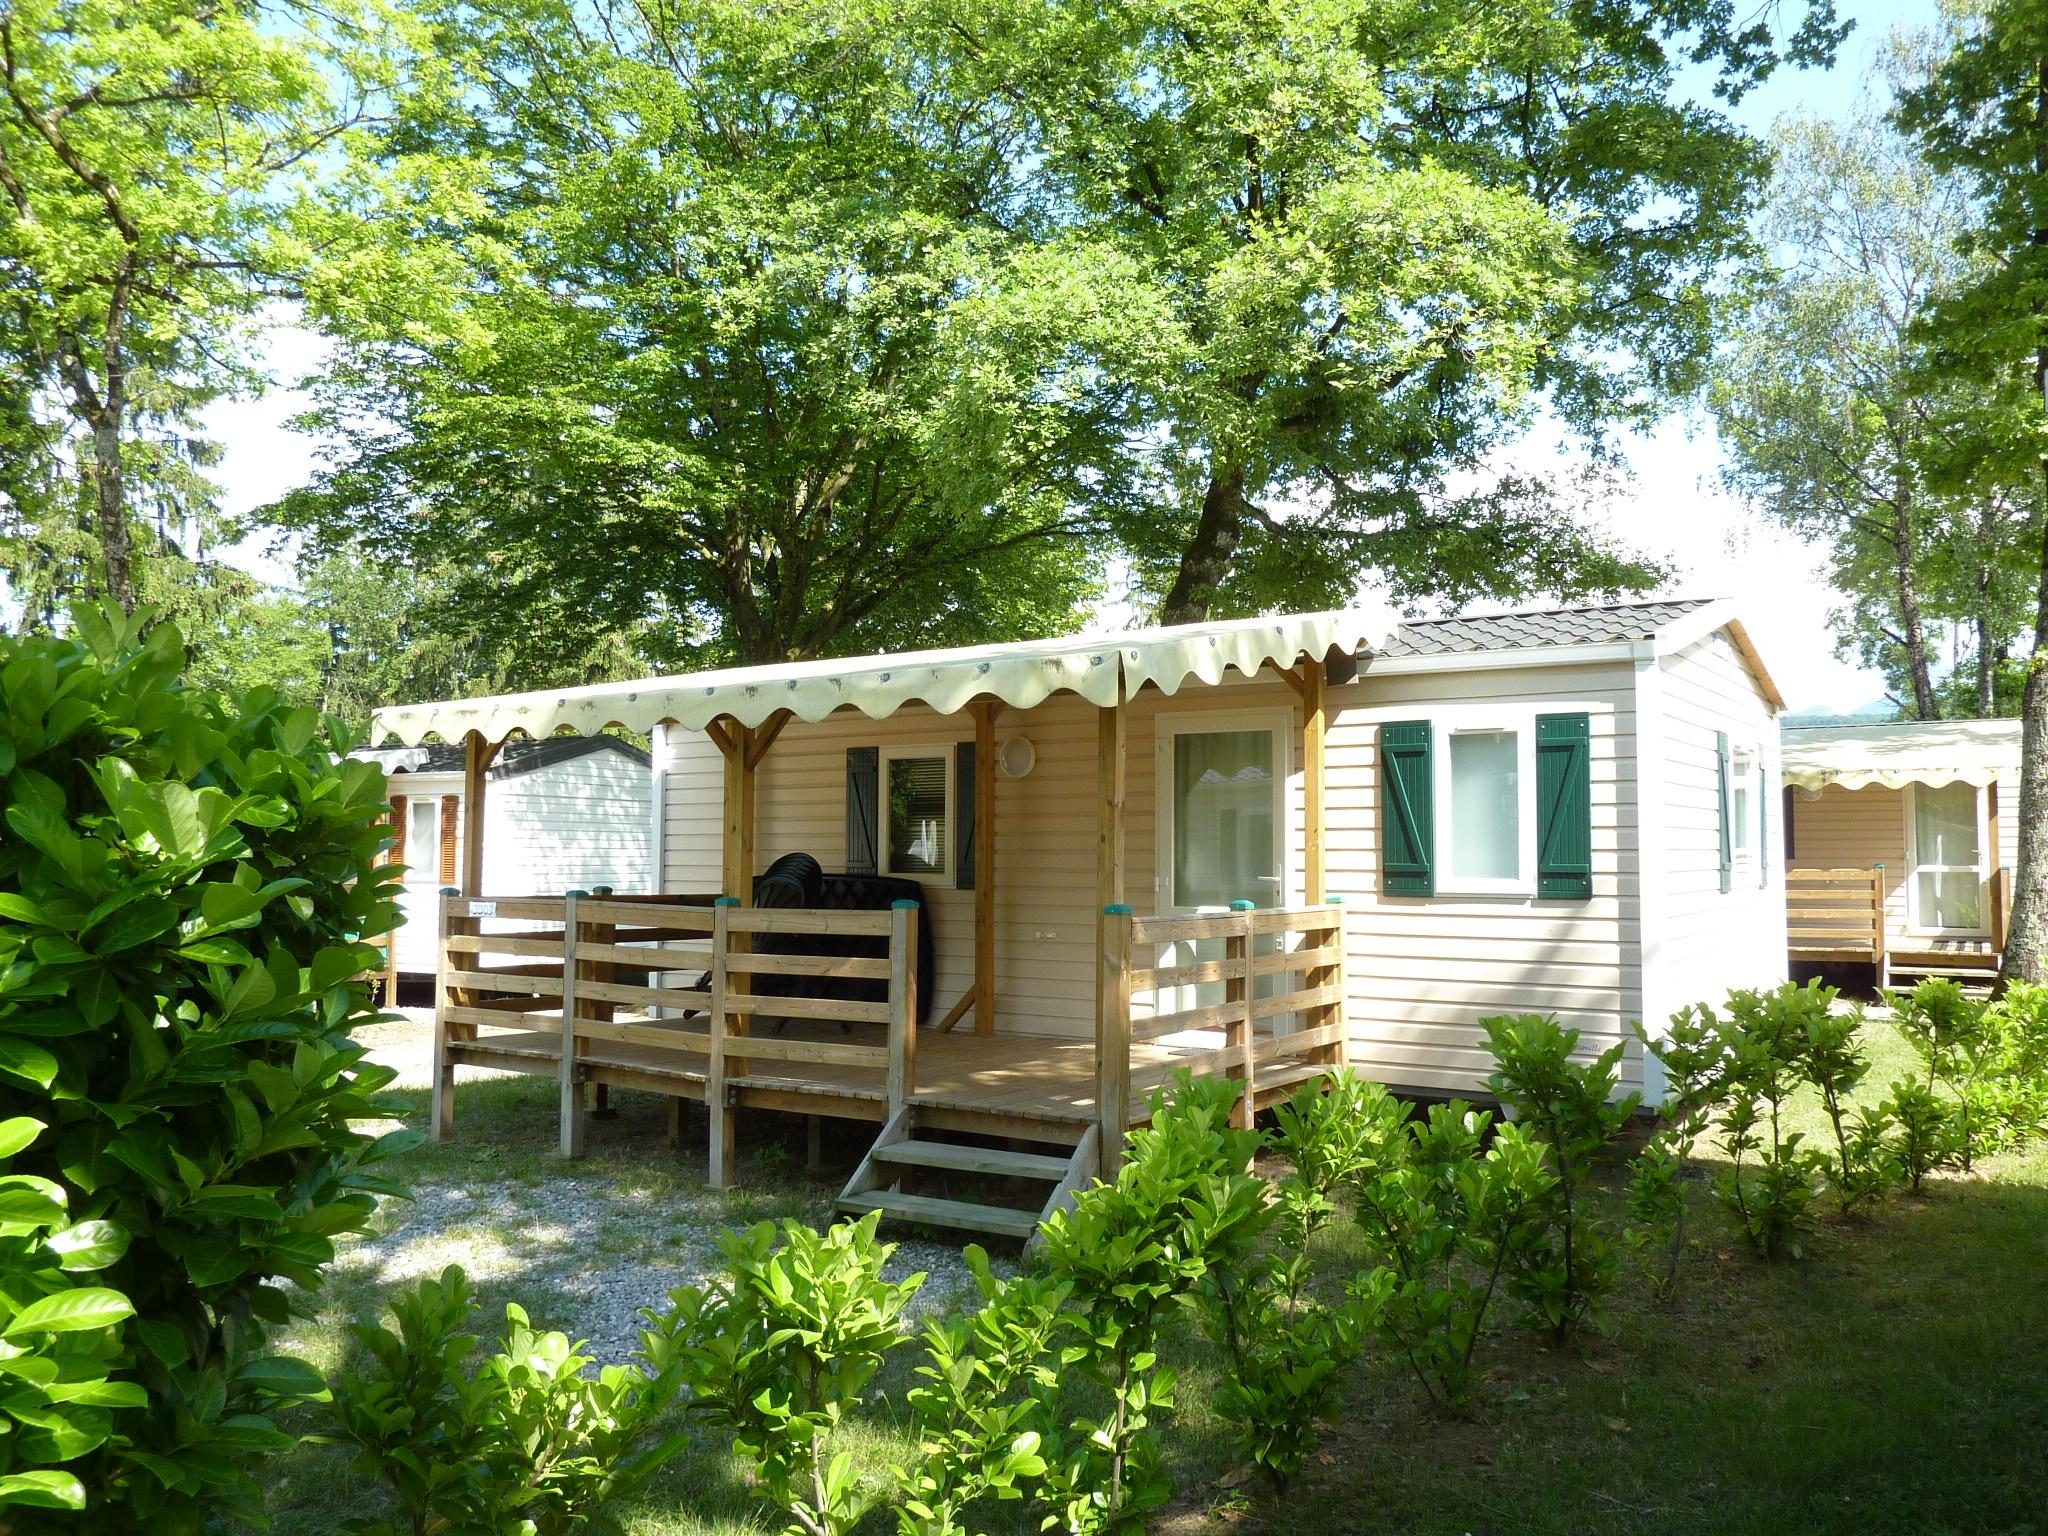 Location - Mobilhome Leman (9-12Ans) 29M² - Terrasse Couverte 12M² (2 Chambres) - Camping Saint-Disdille